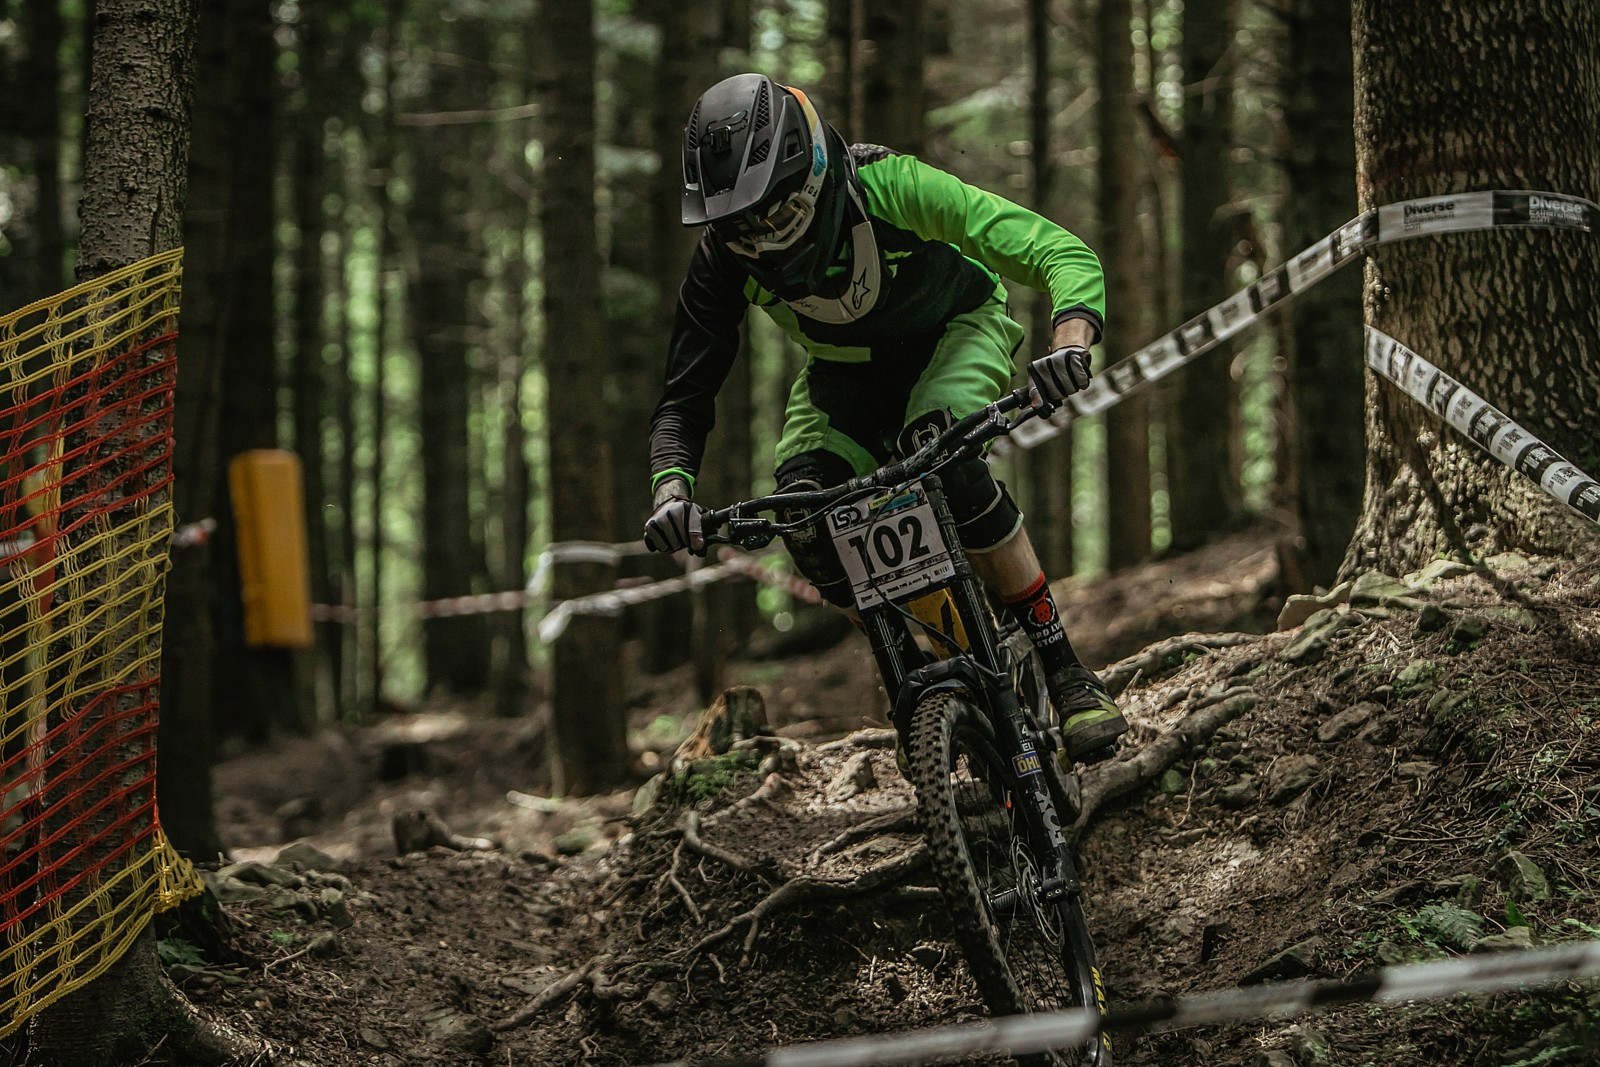 Local Series of Downhill - bartek_zgr - Mountain Biking Pictures - Vital MTB